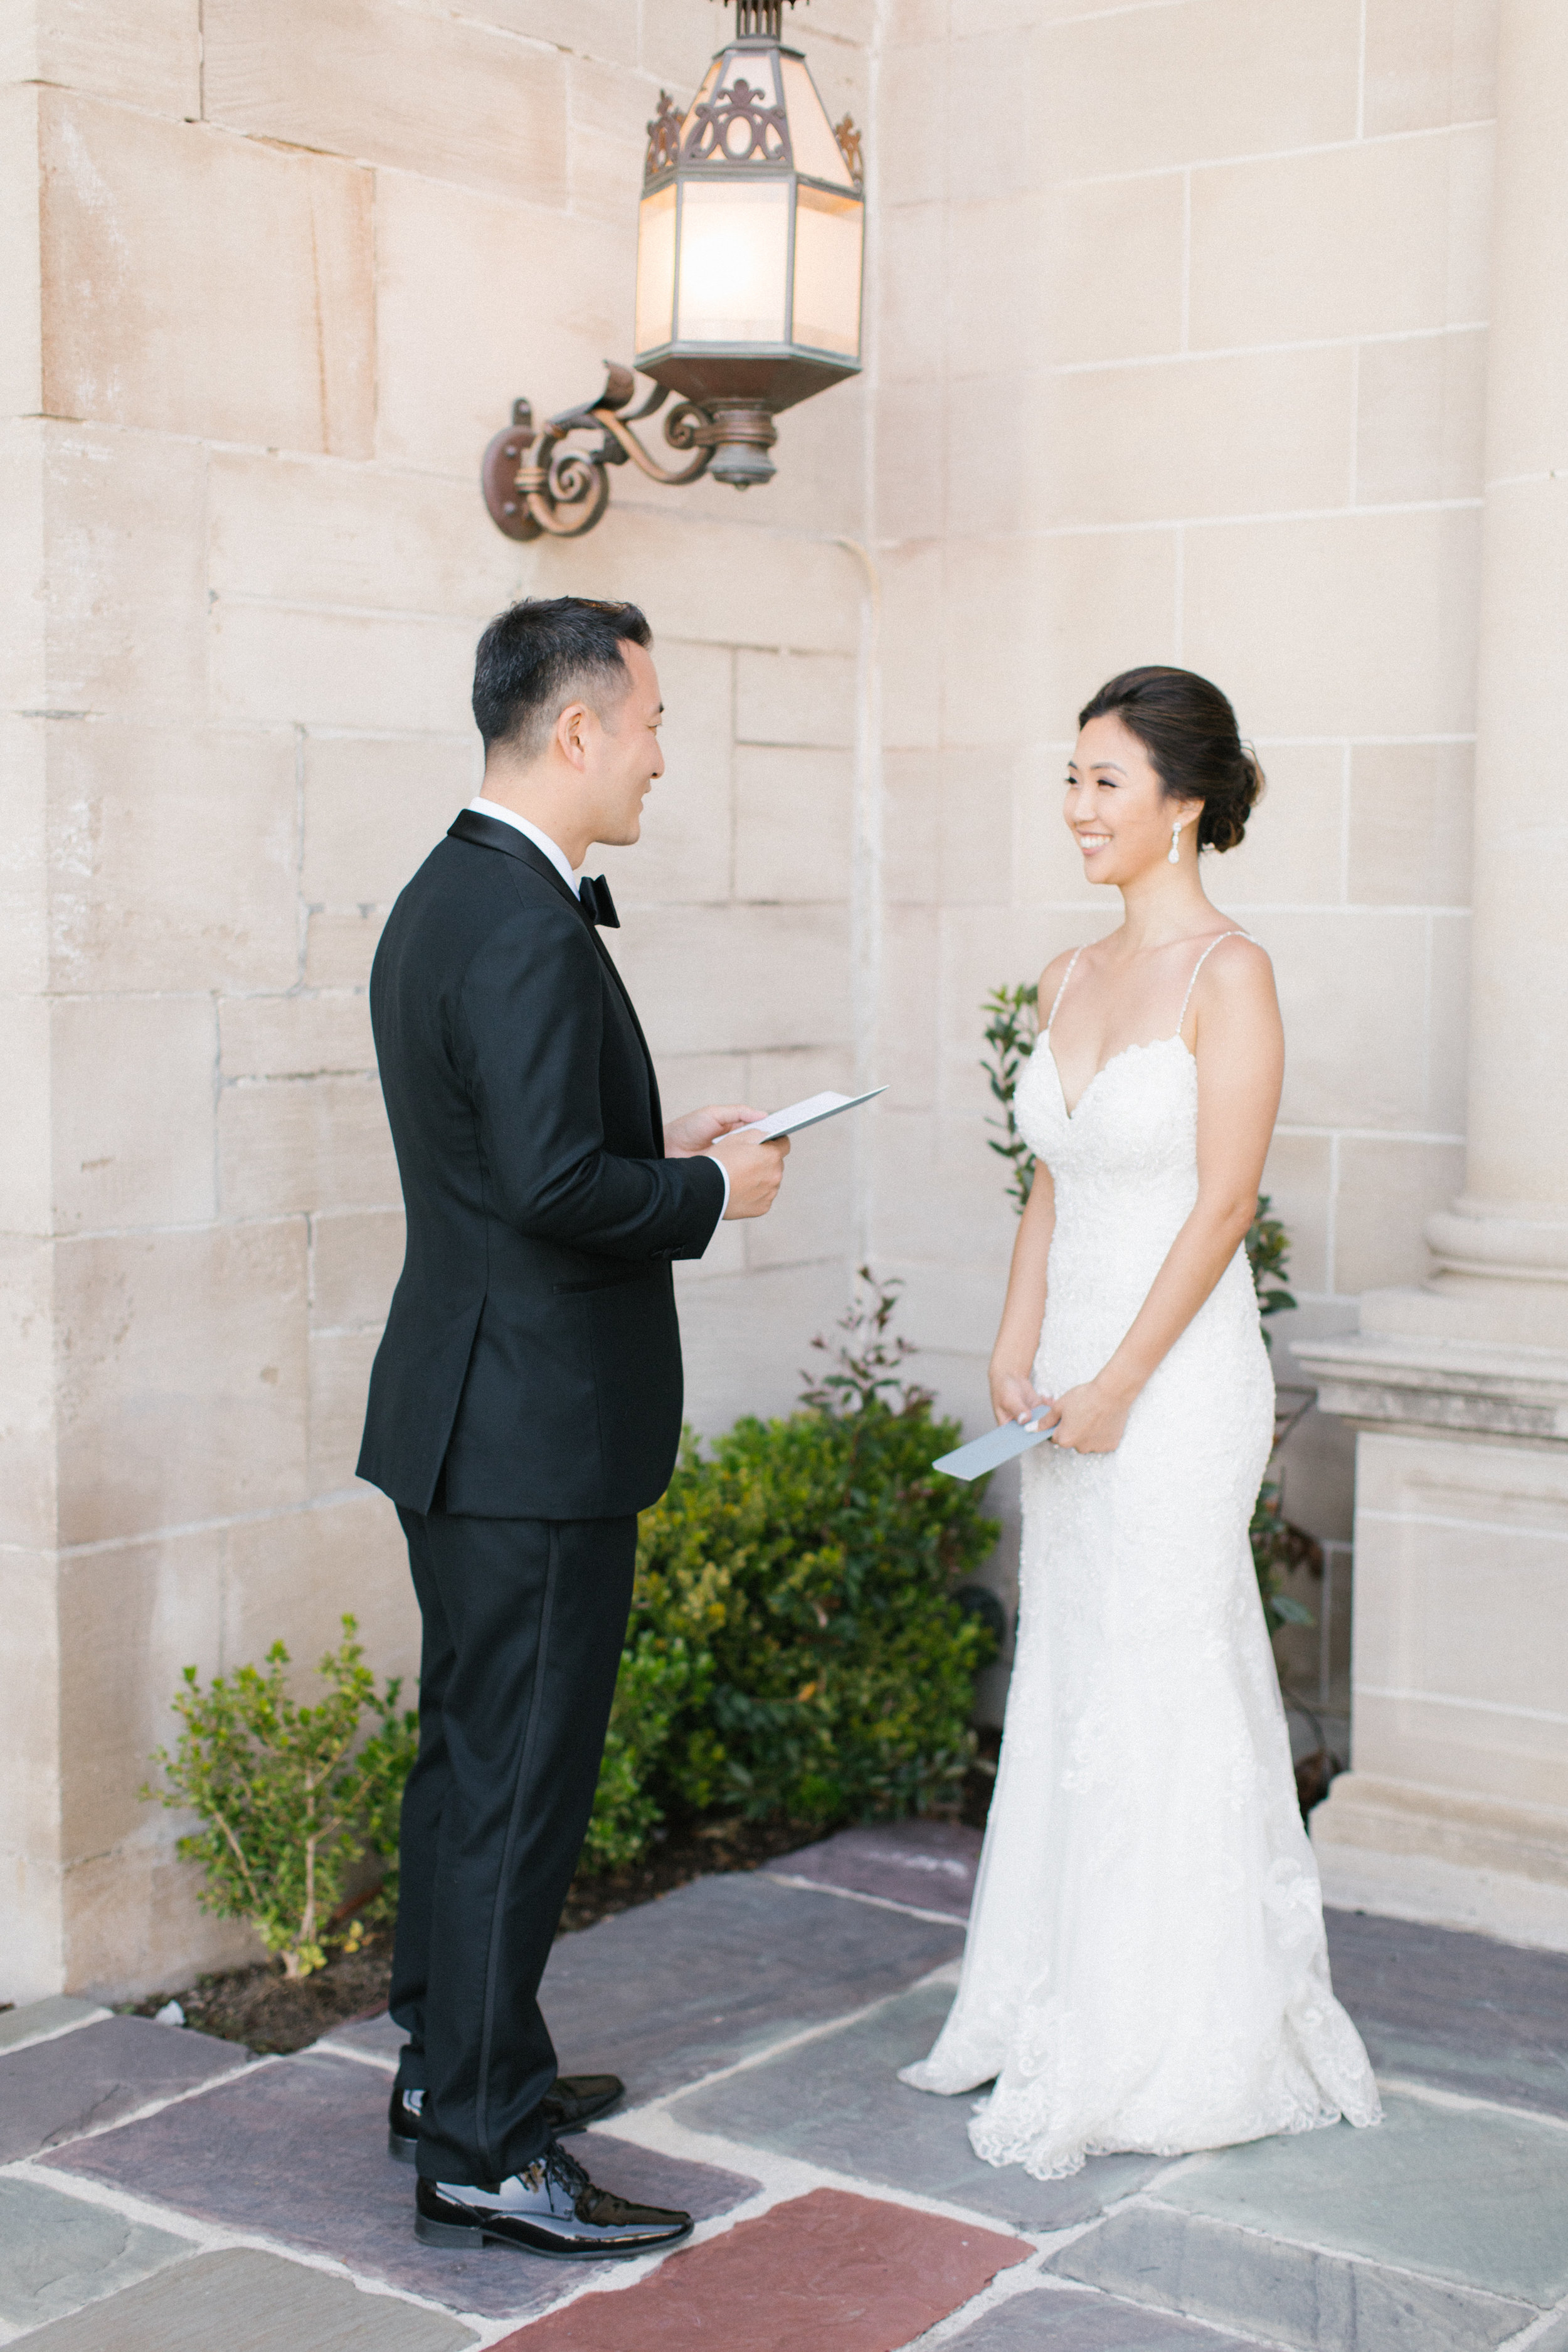 Greystone-Mansion-Wedding-Kristina-Adams-875.jpg